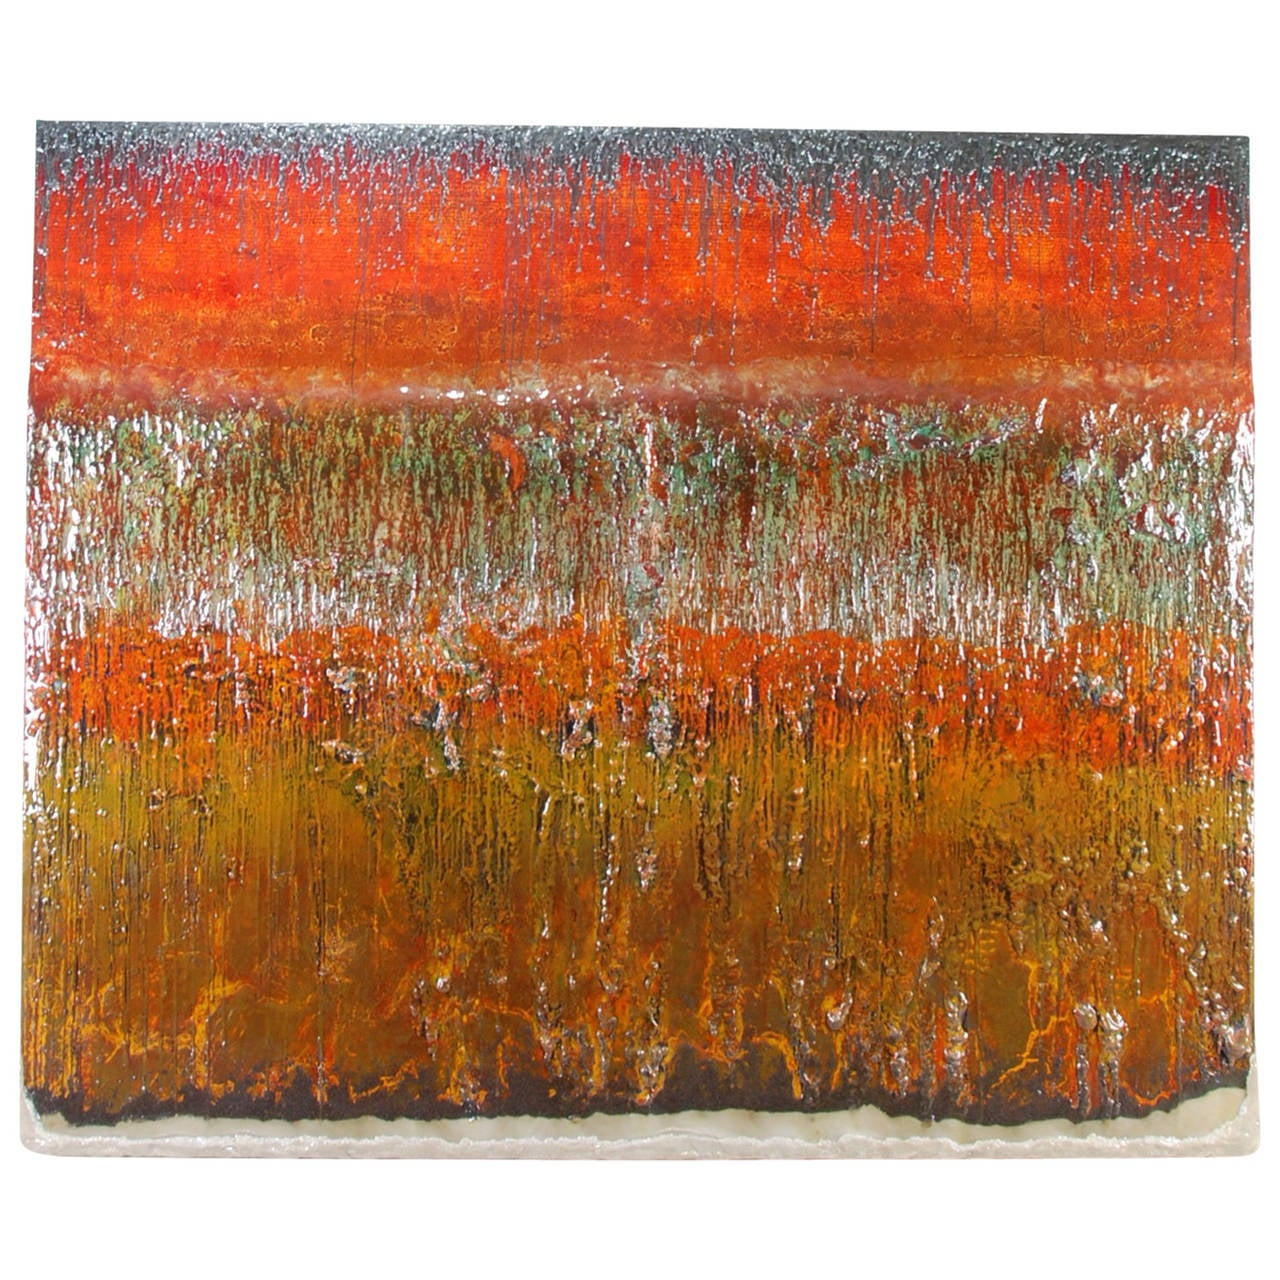 """Large Abstract Painting """"Sea Fire"""" by Drew Wood AKA Blakewood"""